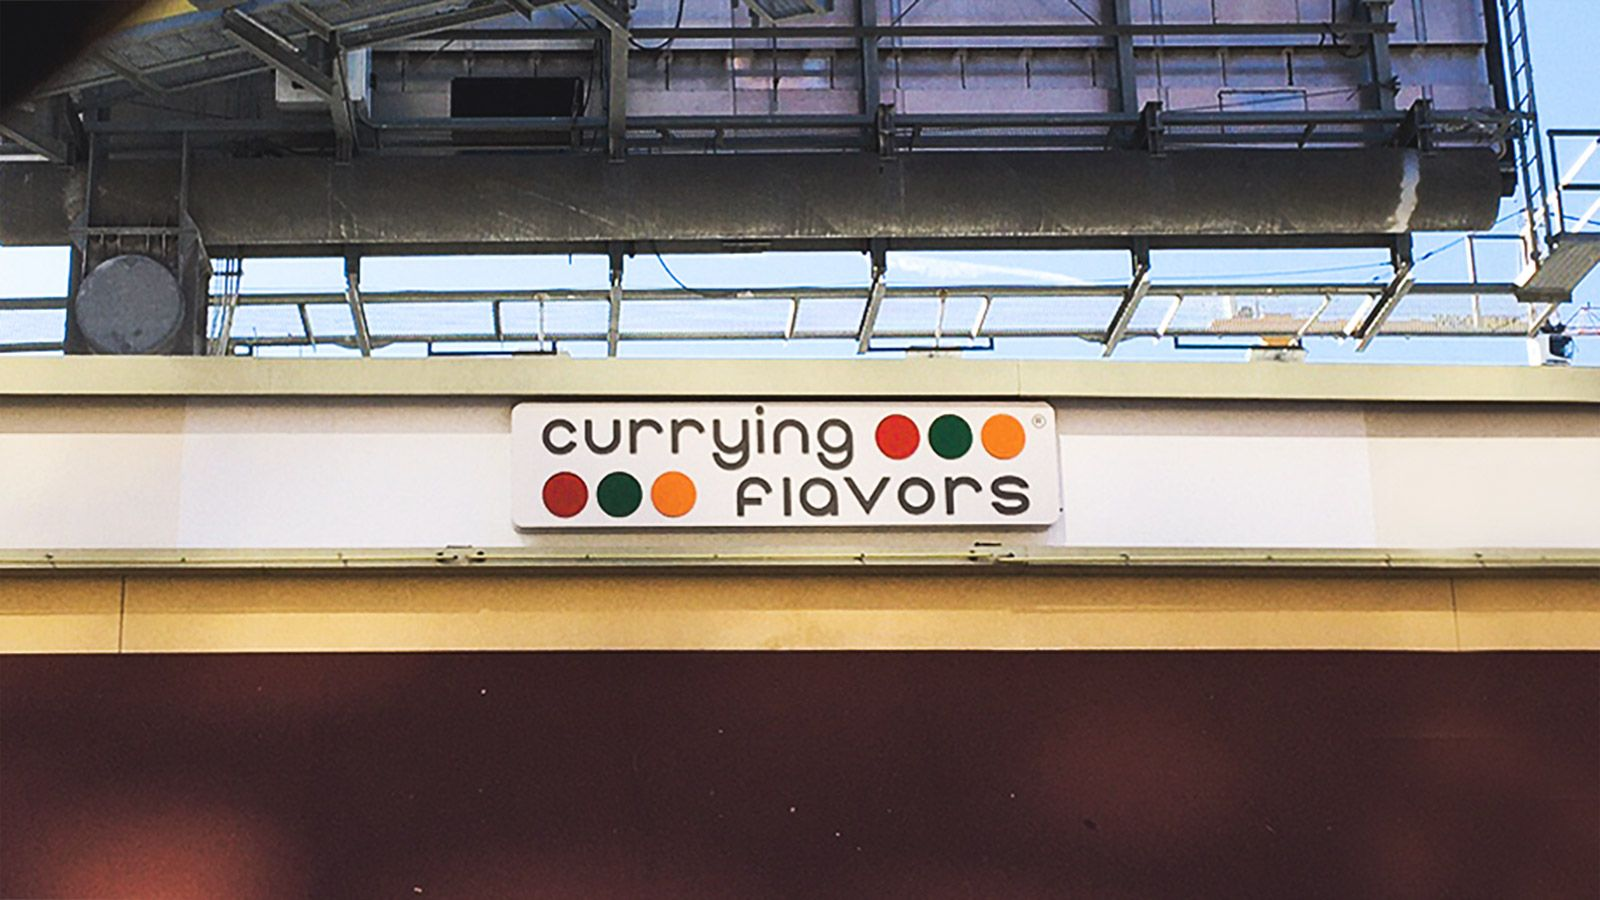 currying flavors illuminated sign